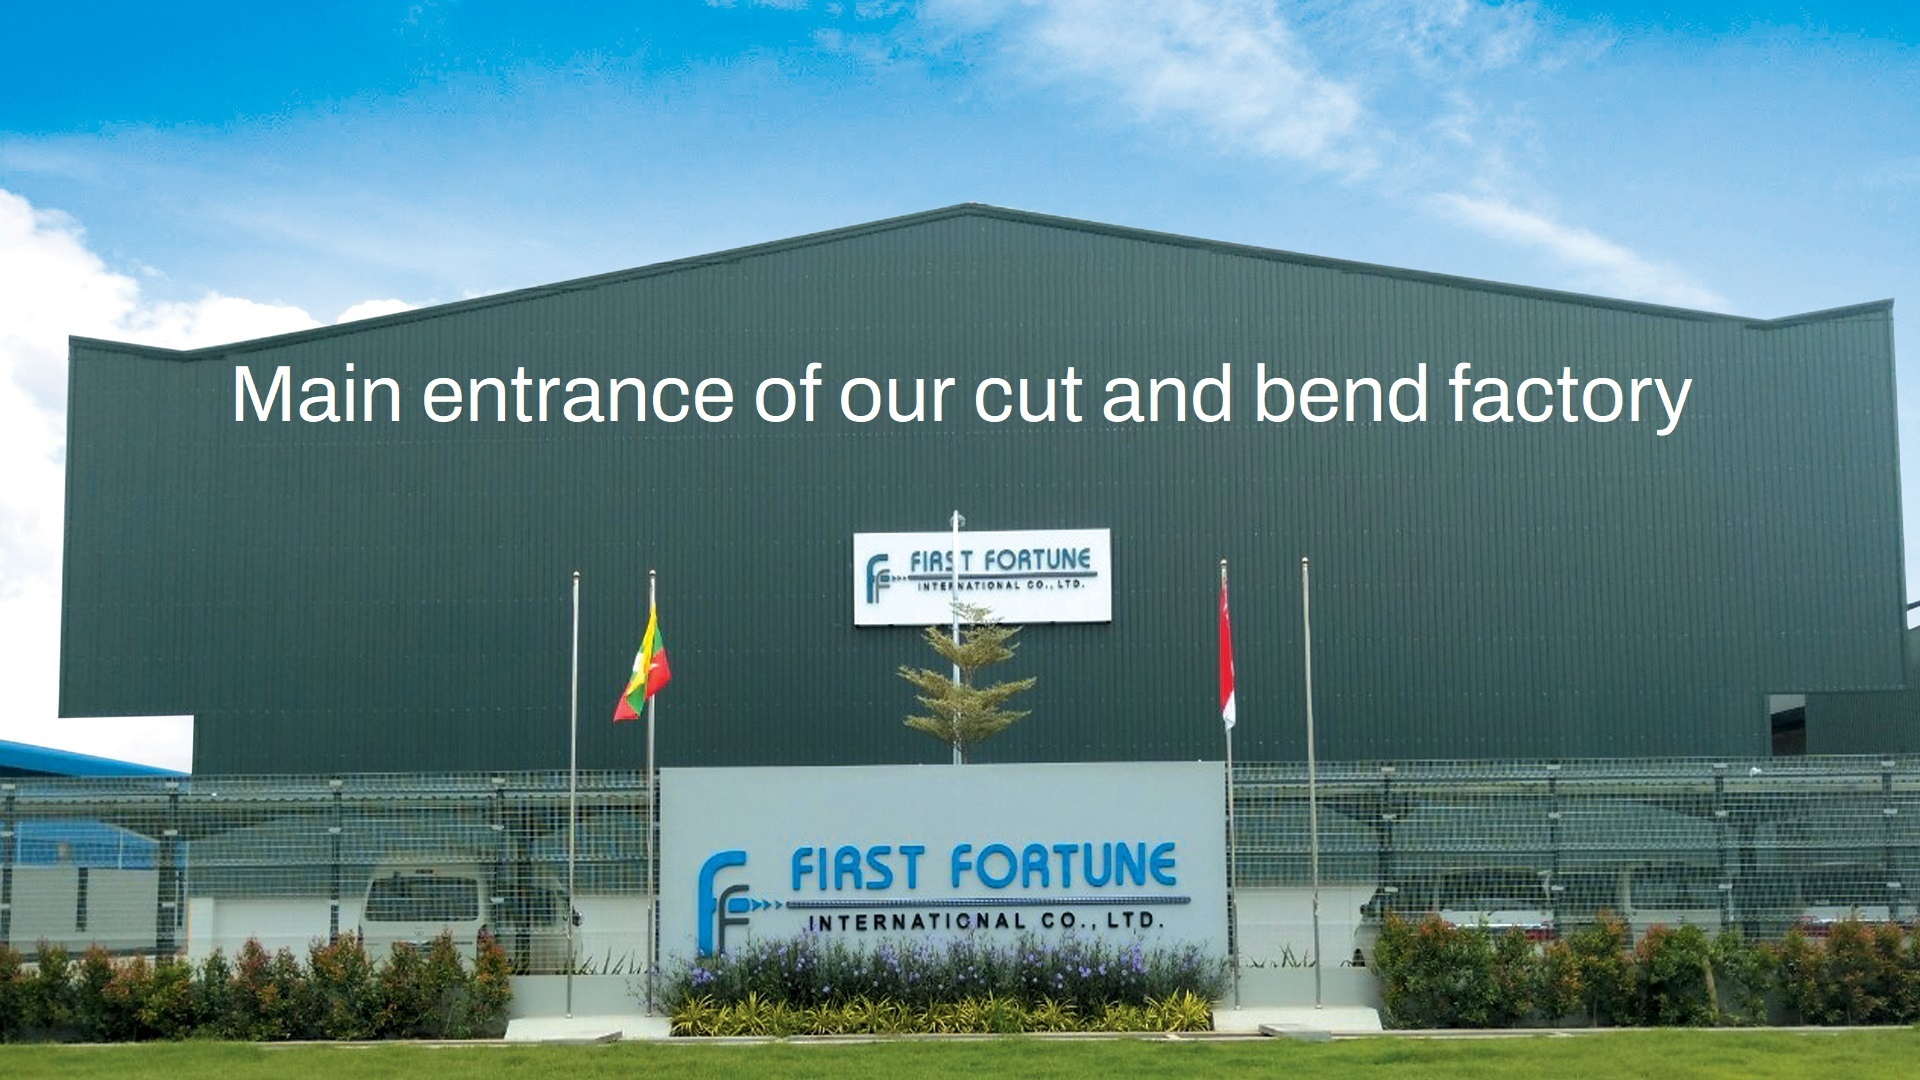 Main entrance of our cut and bend factory